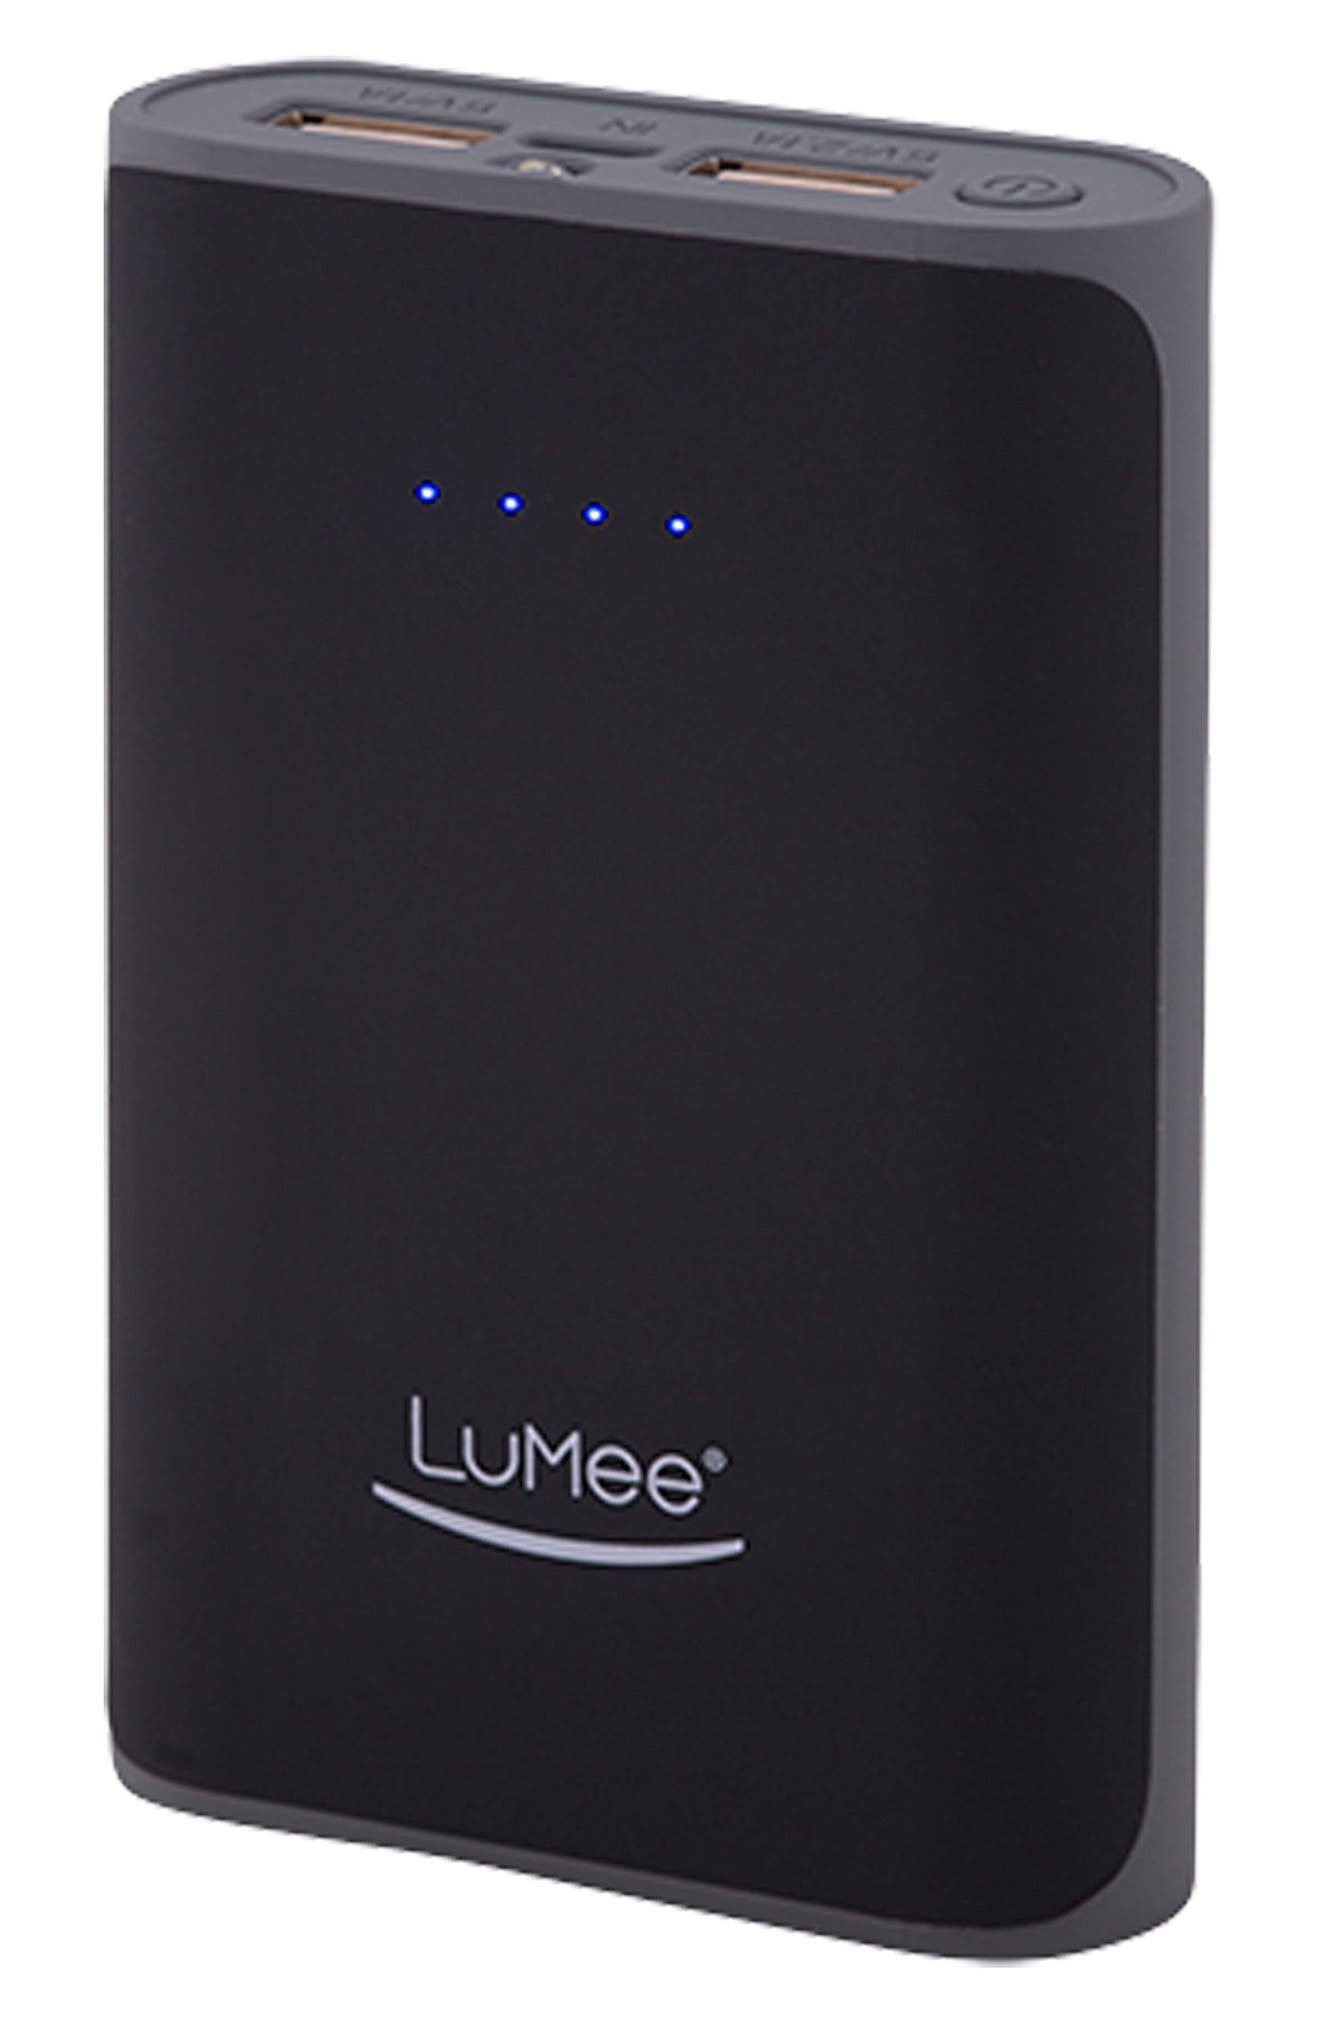 LuMee Power Bank Portable Mobile Device Charger